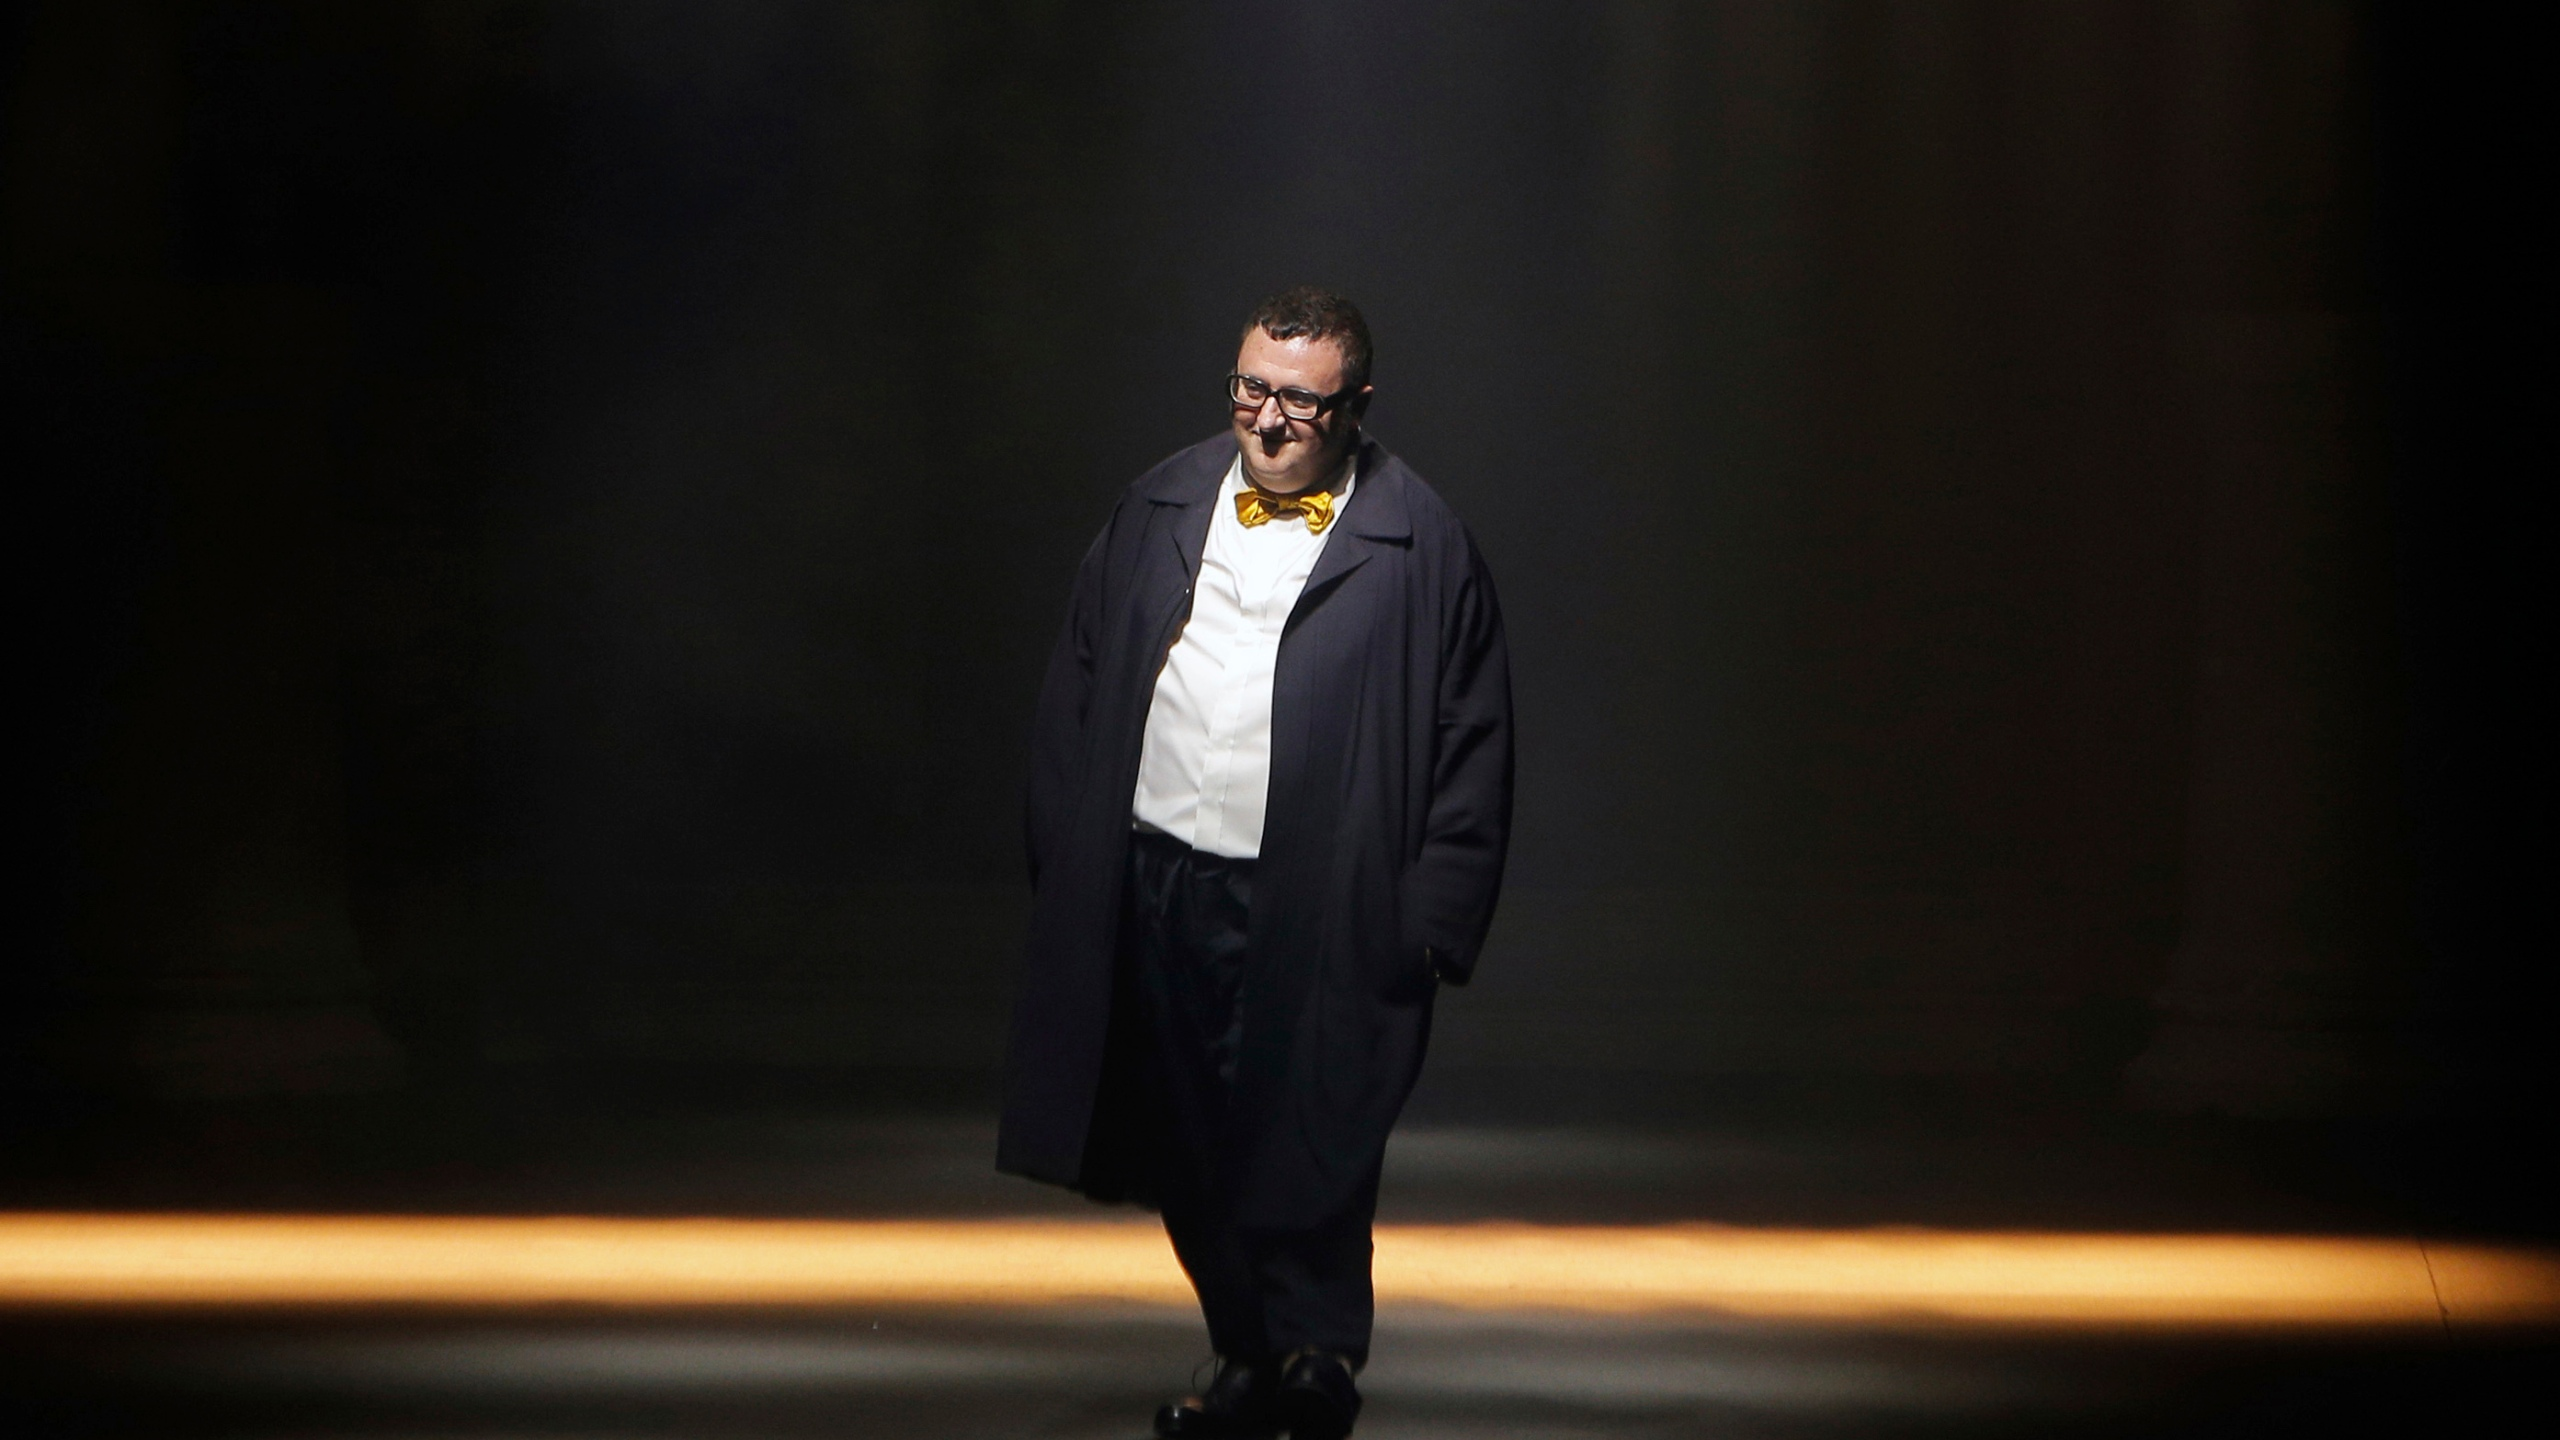 In this file photo dated Thursday, Oct. 1, 2015, Israeli fashion designer Alber Elbaz acknowledges applause at the end of his Spring-Summer 2016 ready-to-wear fashion collection for Lanvin, presented during the Paris Fashion Week, in Paris. (AP Photo/Thibault Camus, File)